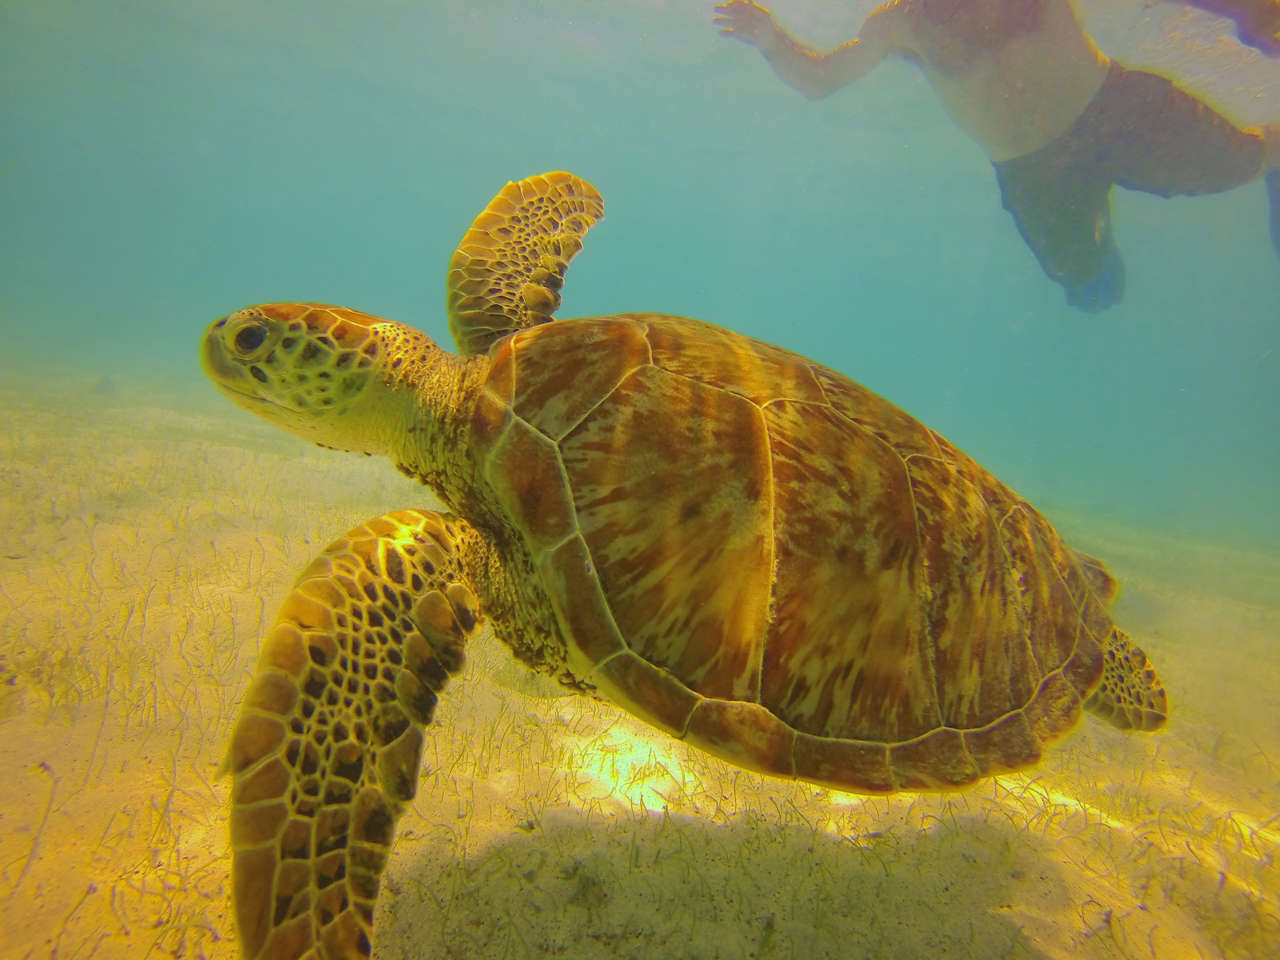 The Tobago Cays marine park is one of the best places worldwide to get up close to green turtles